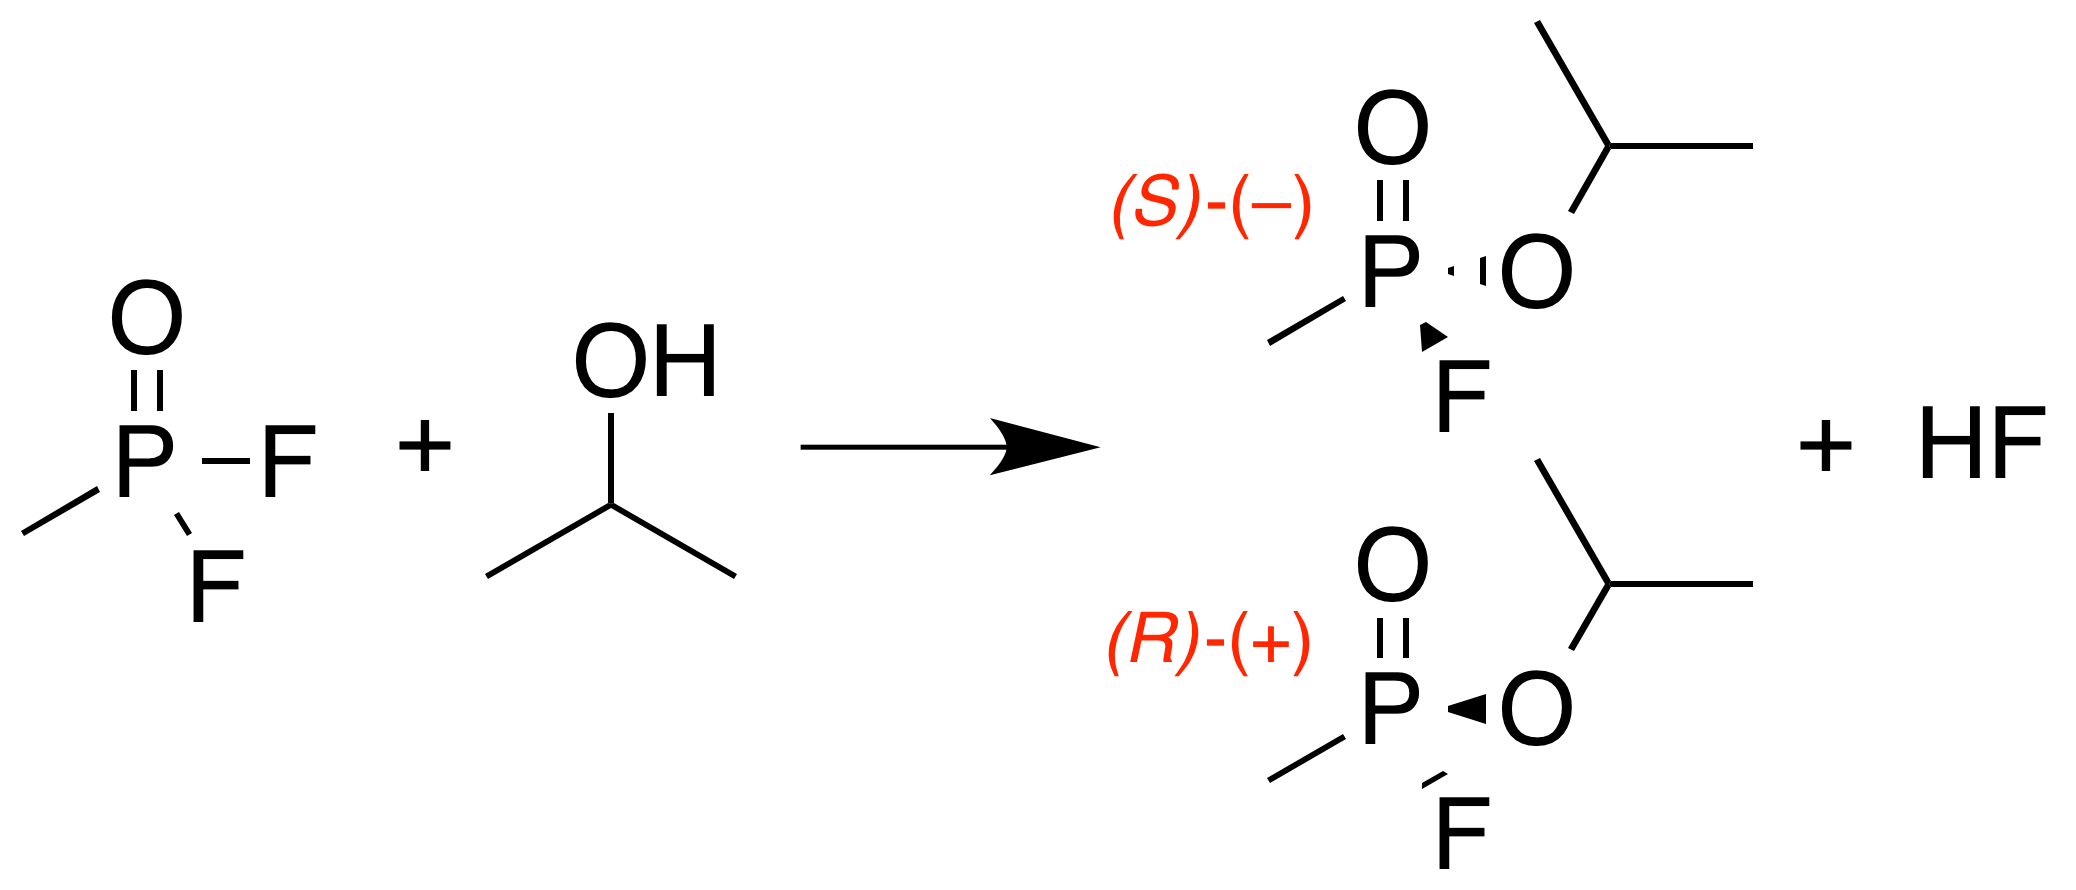 File Sarin Synth With Racemic Stereochemistry